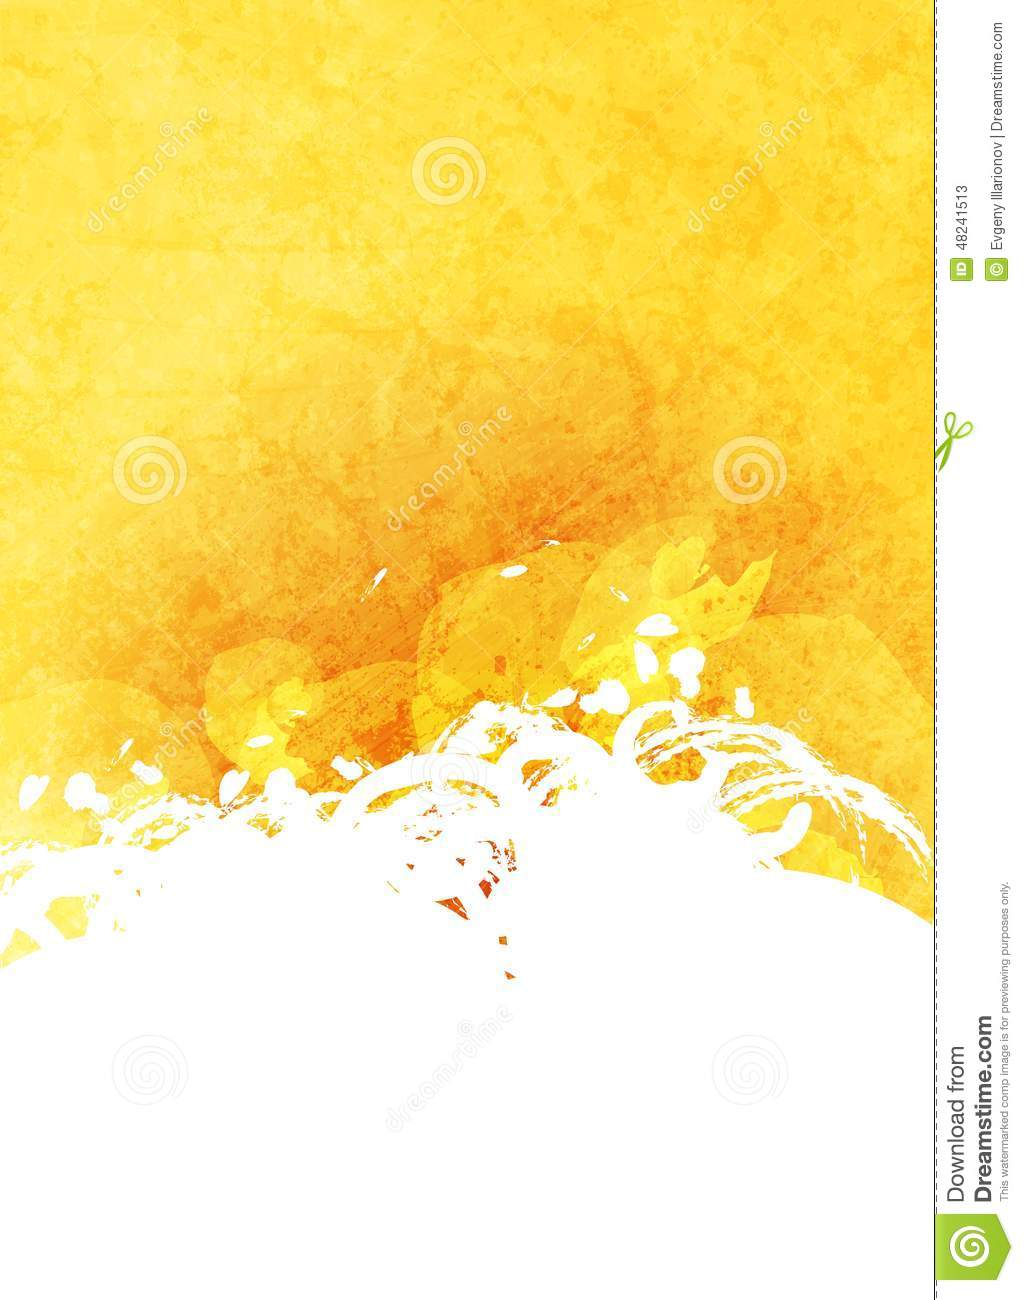 Yellow and white pattern background - photo#8